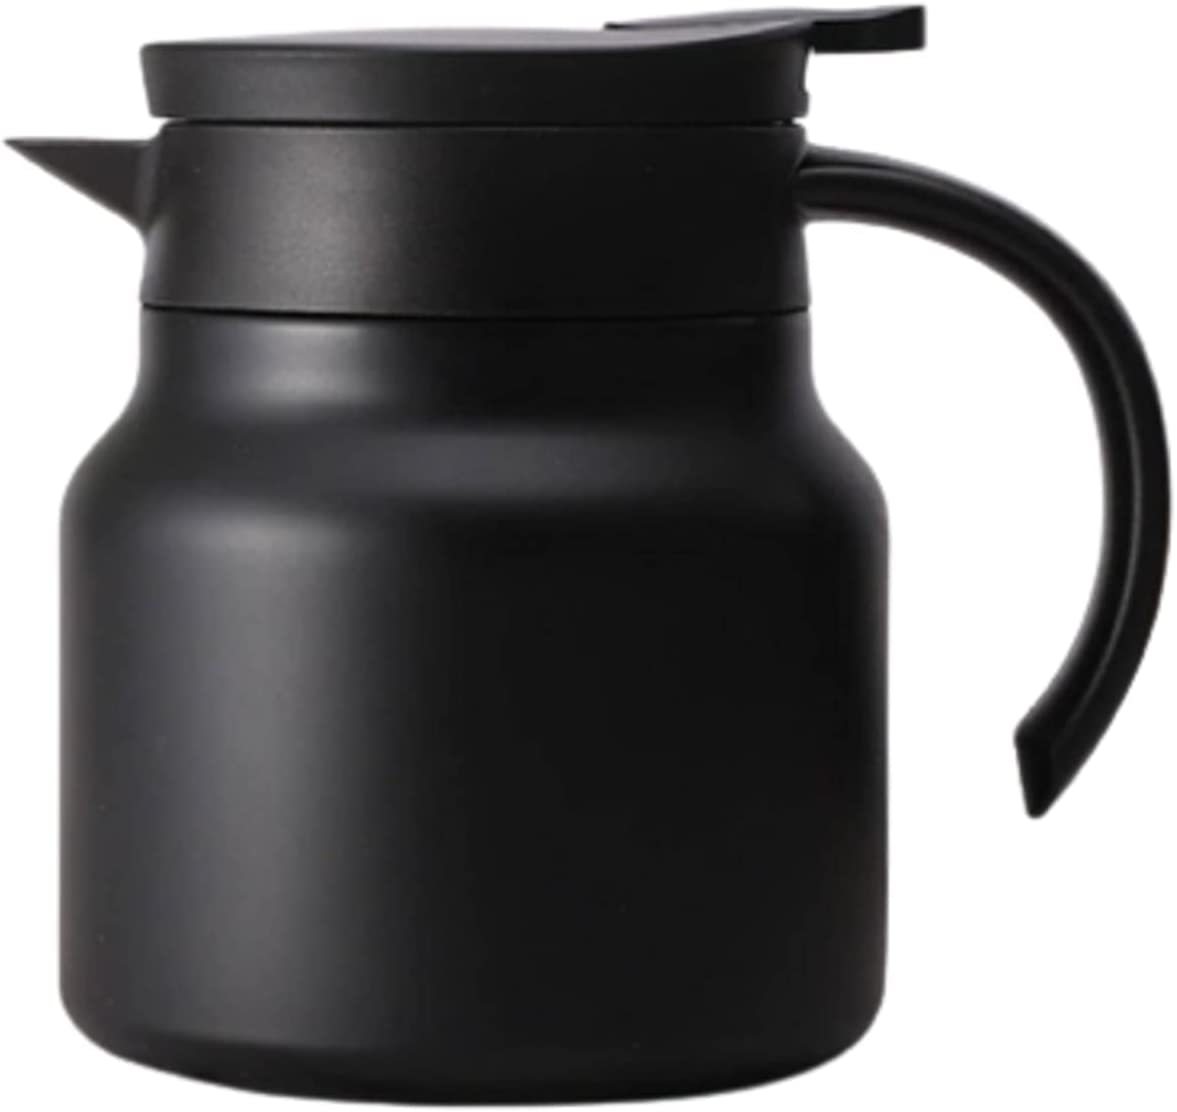 N\C Stainless Steel Max 75% OFF Insulated Coffee Bottle Teapot V and Super sale period limited Double